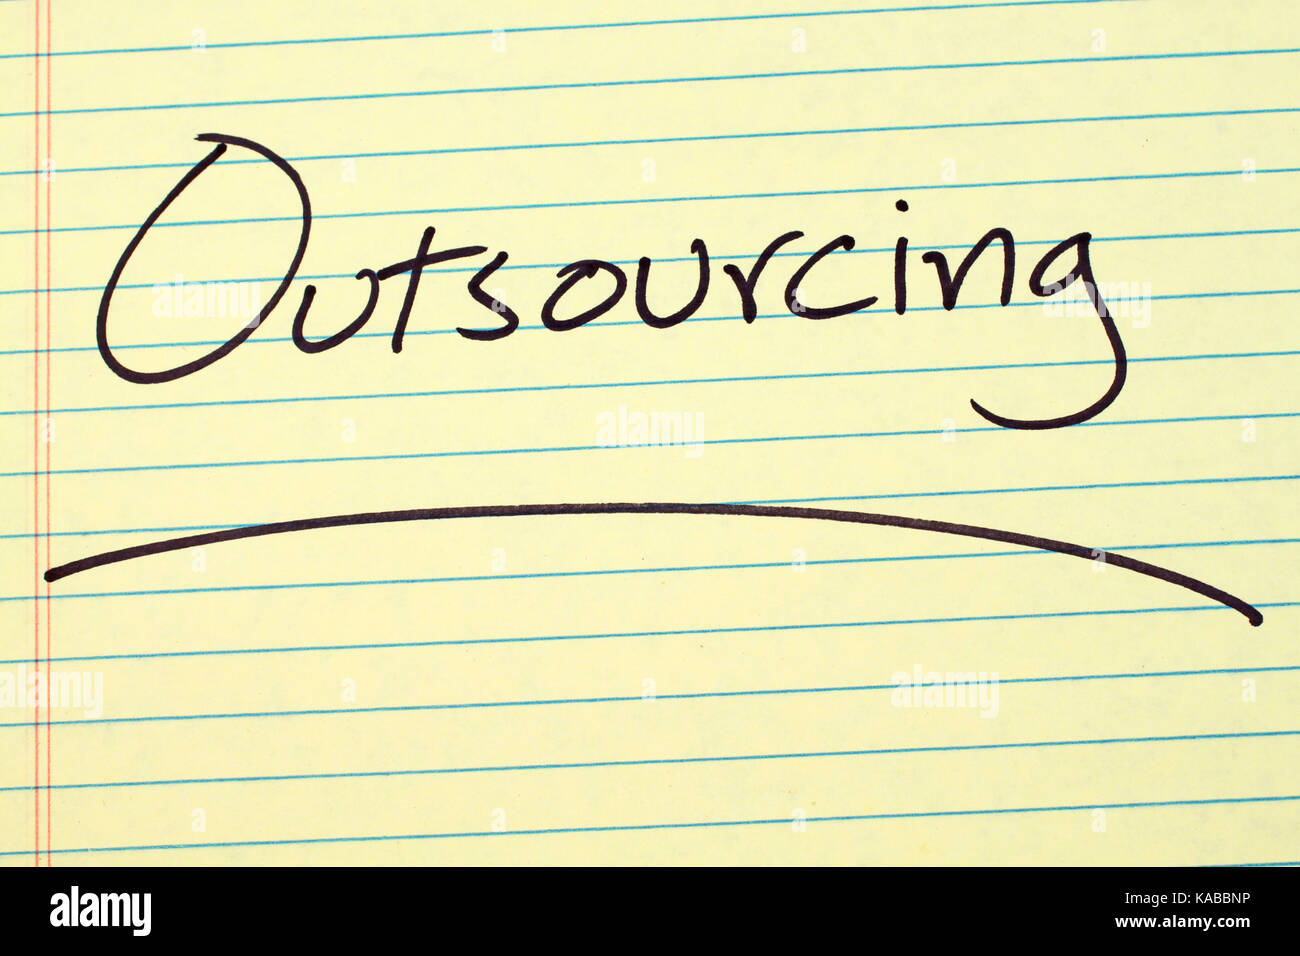 The word 'Outsourcing' underlined on a yellow legal pad - Stock Image